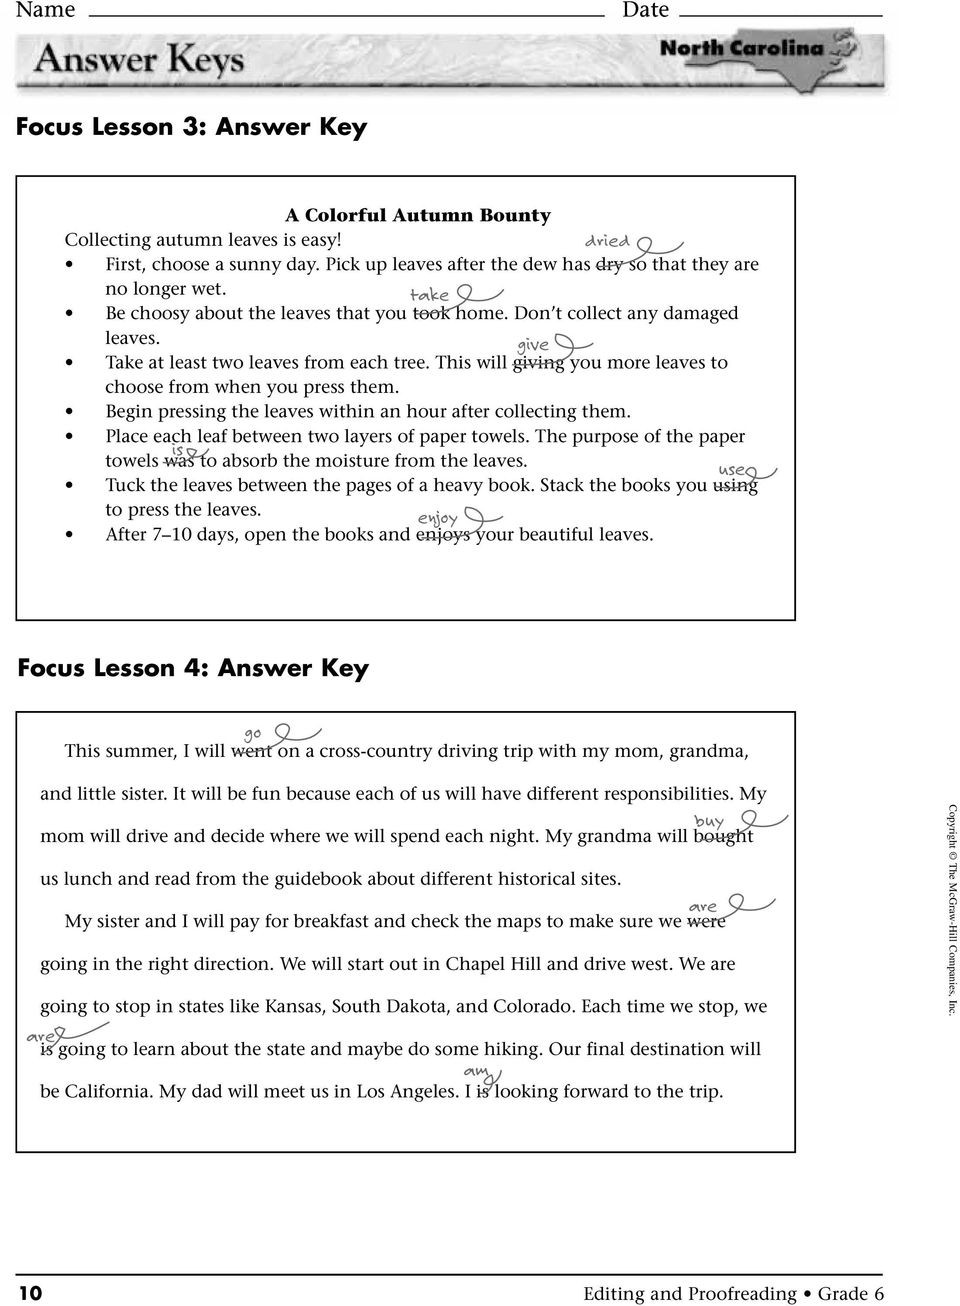 Editing Worksheet Middle School Editing and Proofreading Pdf Free Download